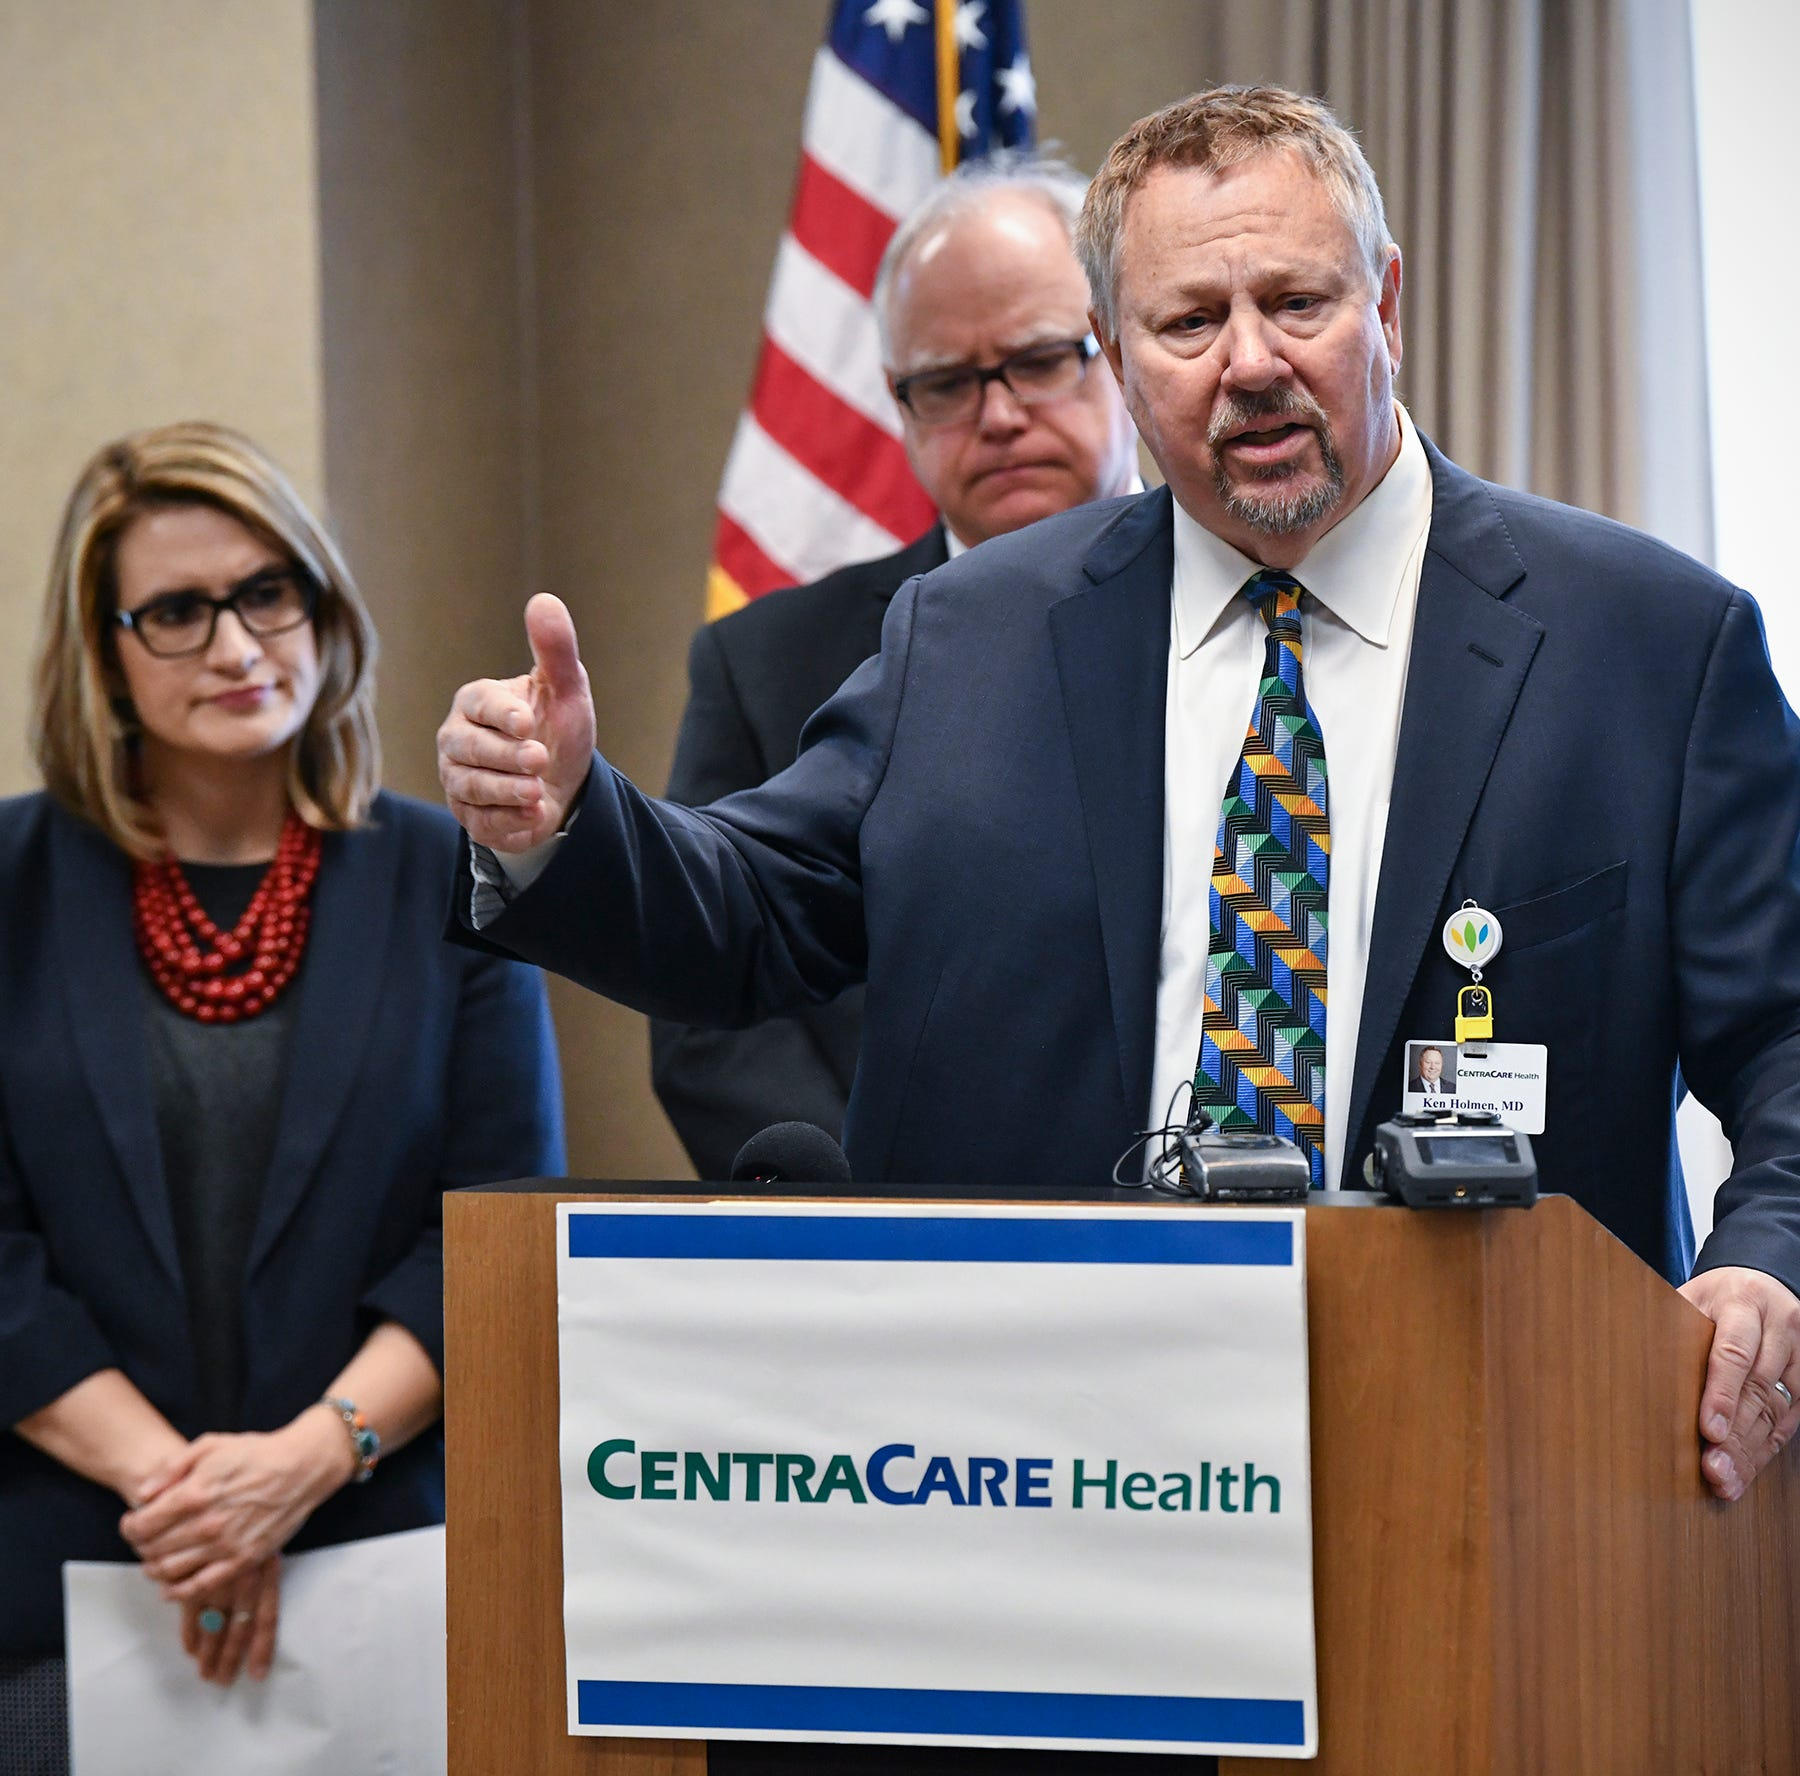 CentraCare CEO joins Gov. Walz in call to keep provider tax for Health Care Access Fund